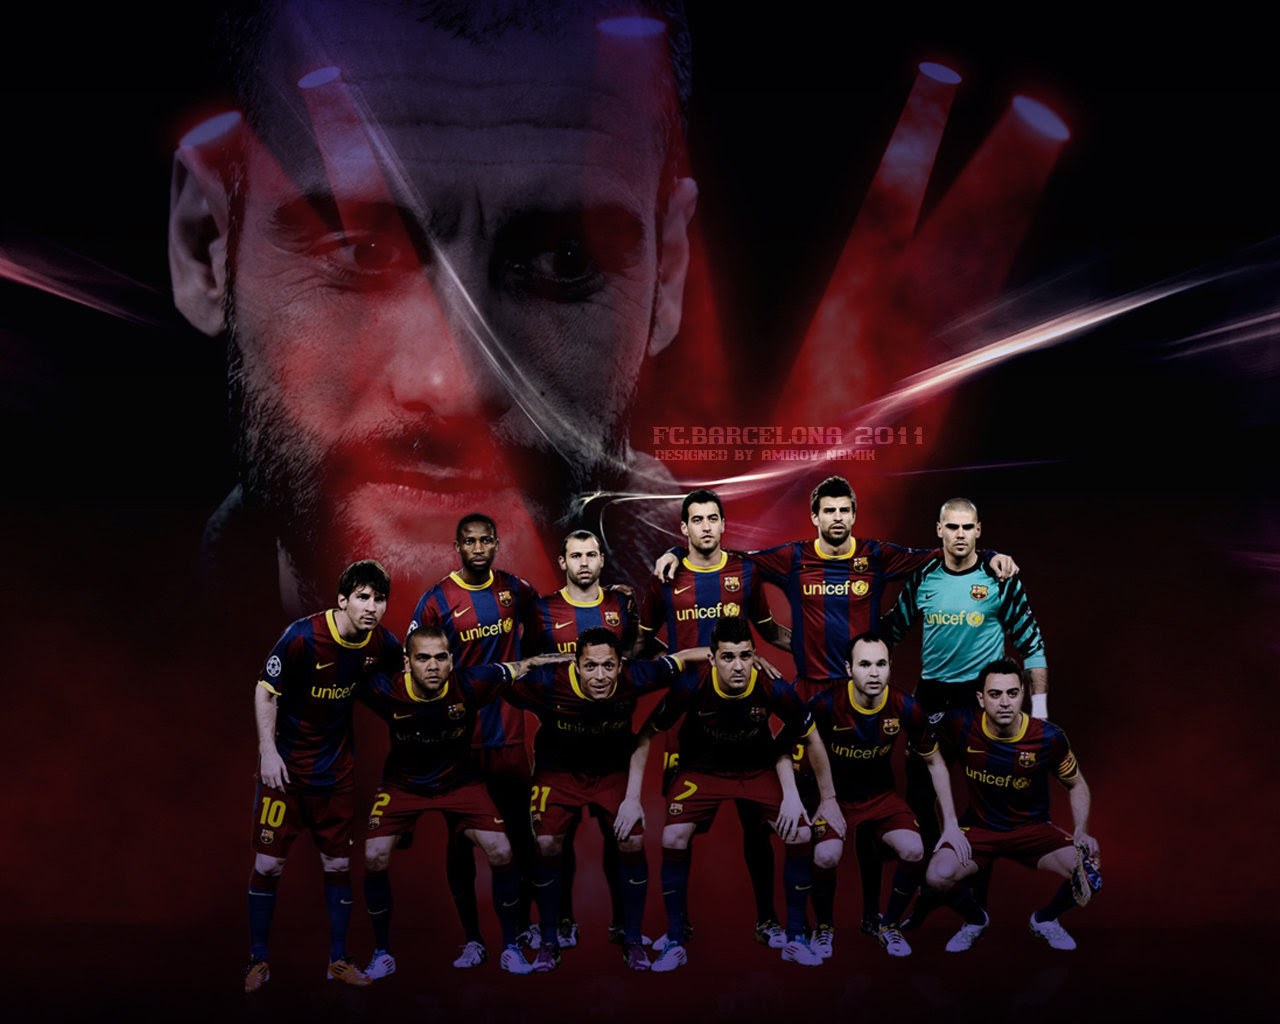 Line Up 2010 11 Fc Barcelona Wallpaper 22615409 Fanpop